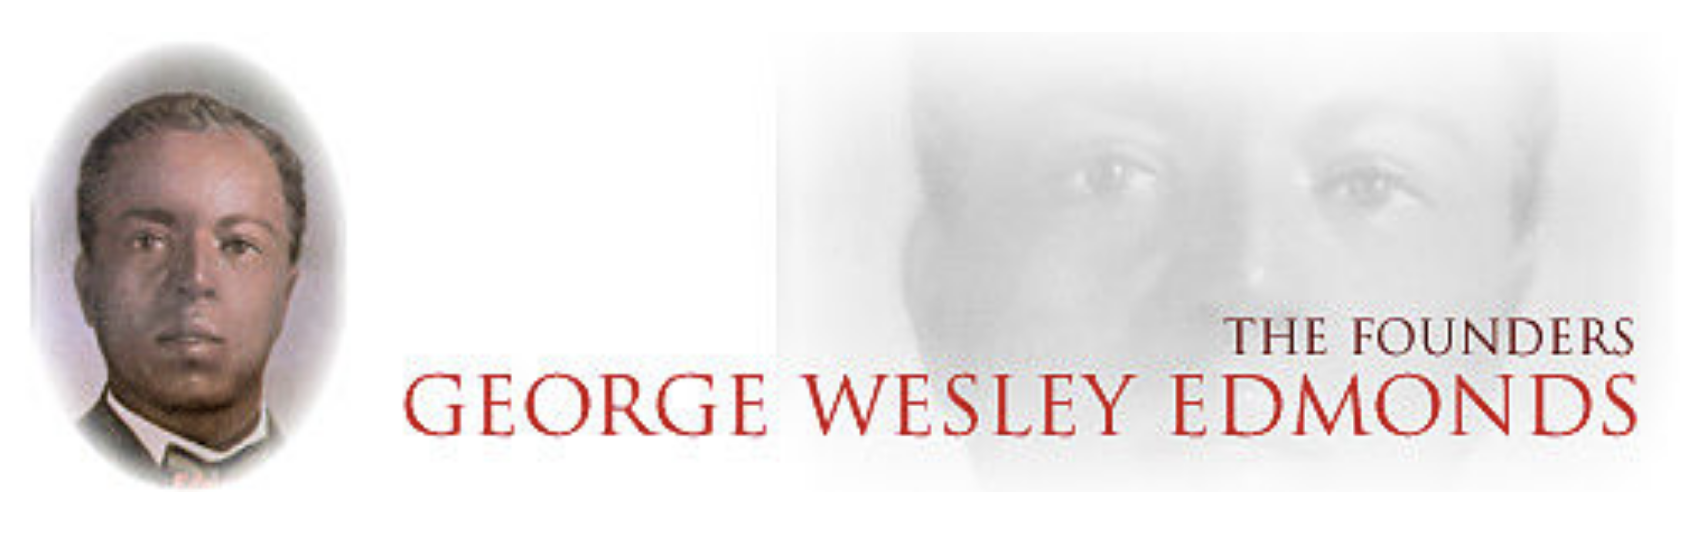 George Wesley Edmonds (1890-1962) was born in Vanderburgh County, Knight Township, Indiana on August 13, 1890. He entered Carver Elementary School and Clark High School in Evansville, graduating in 1910. In the fall of 1910, George entered Indiana University at Bloomington. He joined nine other students in founding Kappa Alpha Psi Fraternity.